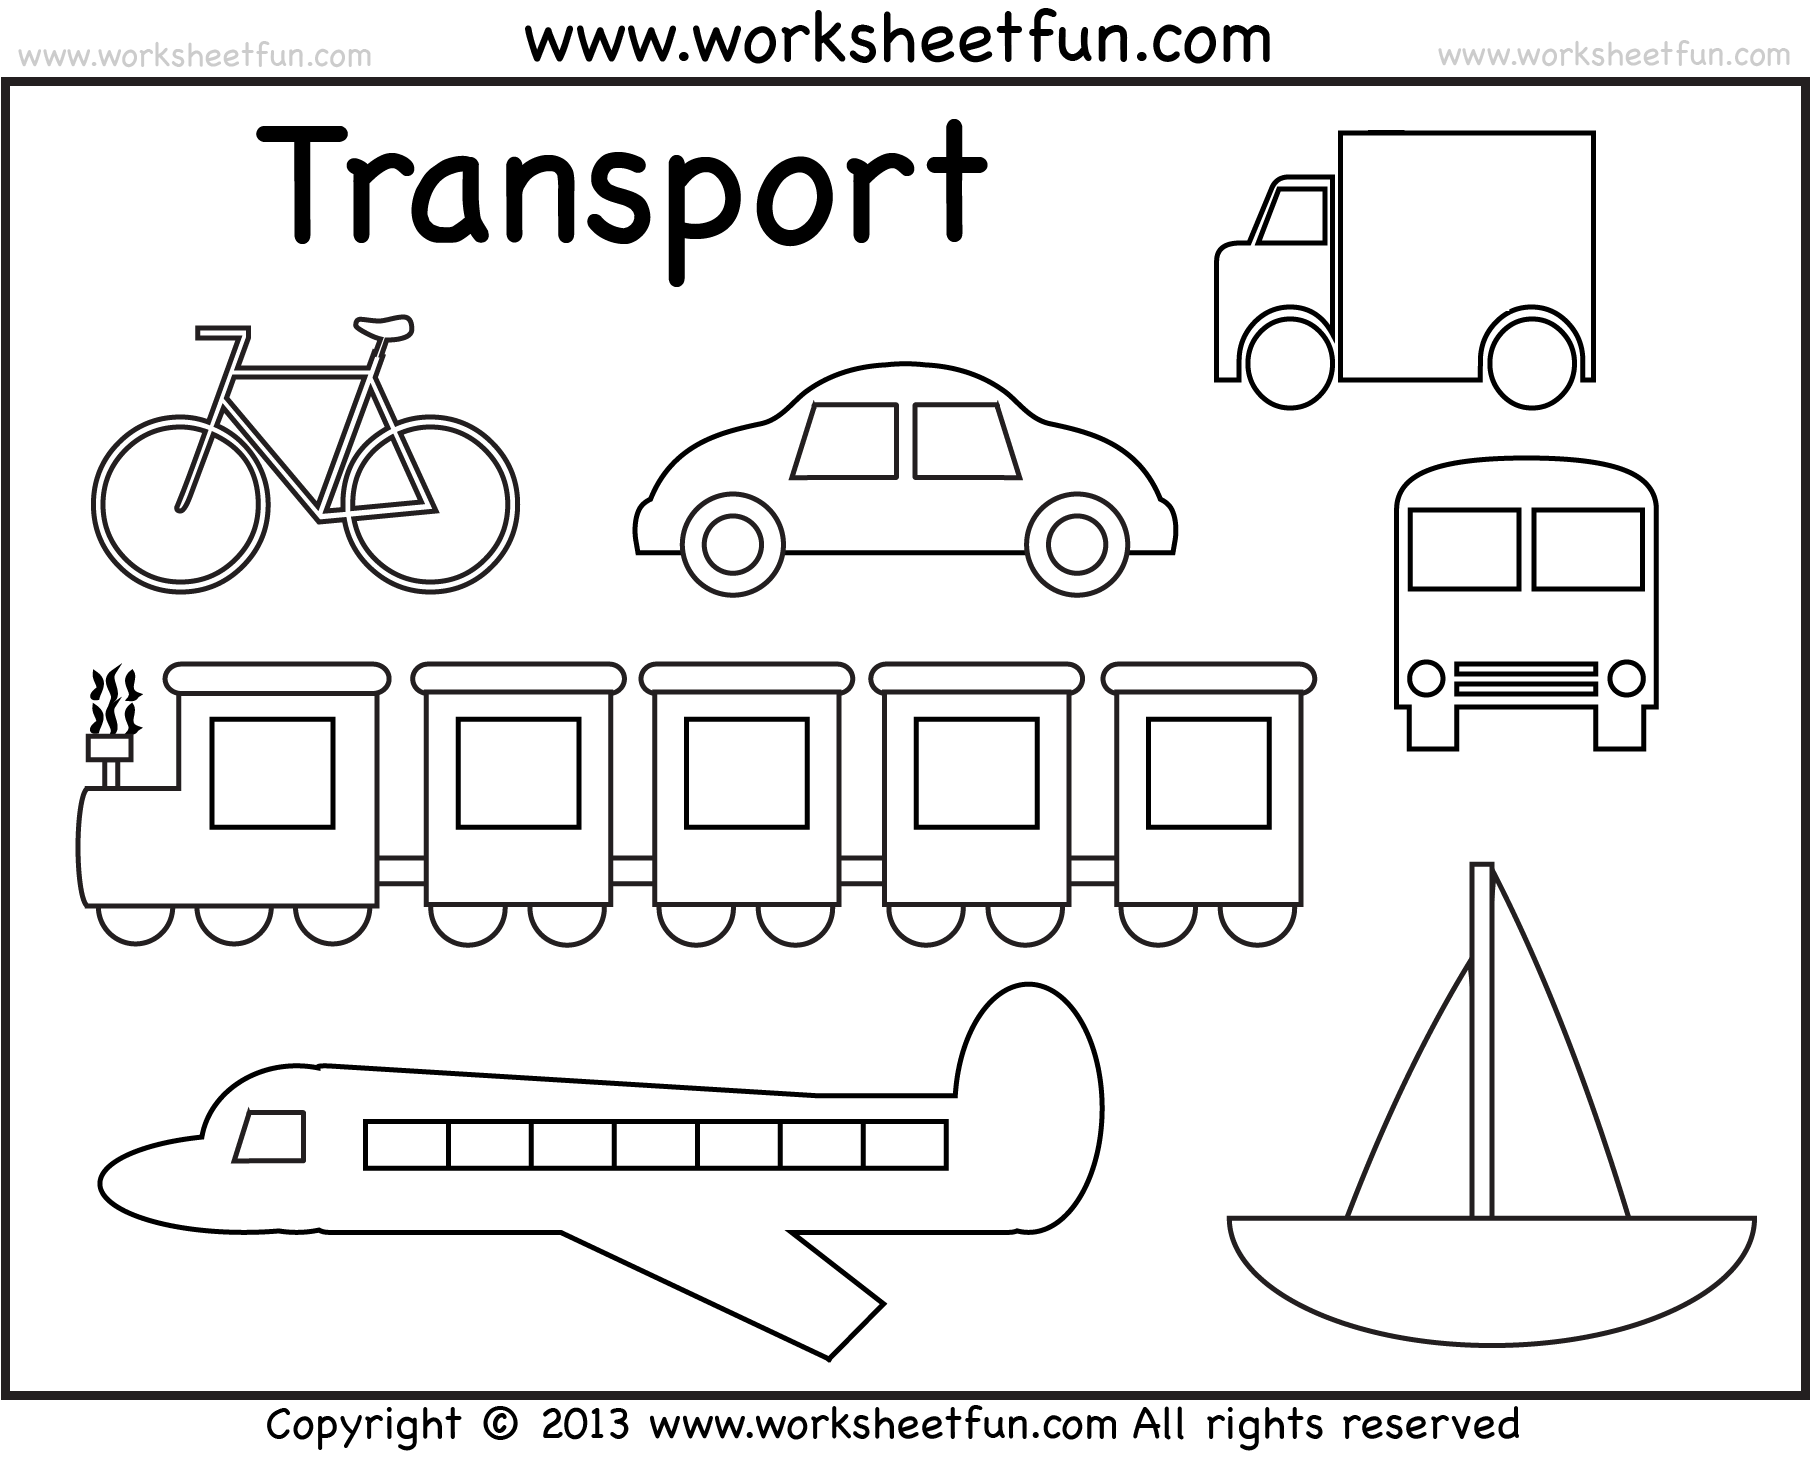 Transportation Coloring Pages For Preschool Grig3 Org